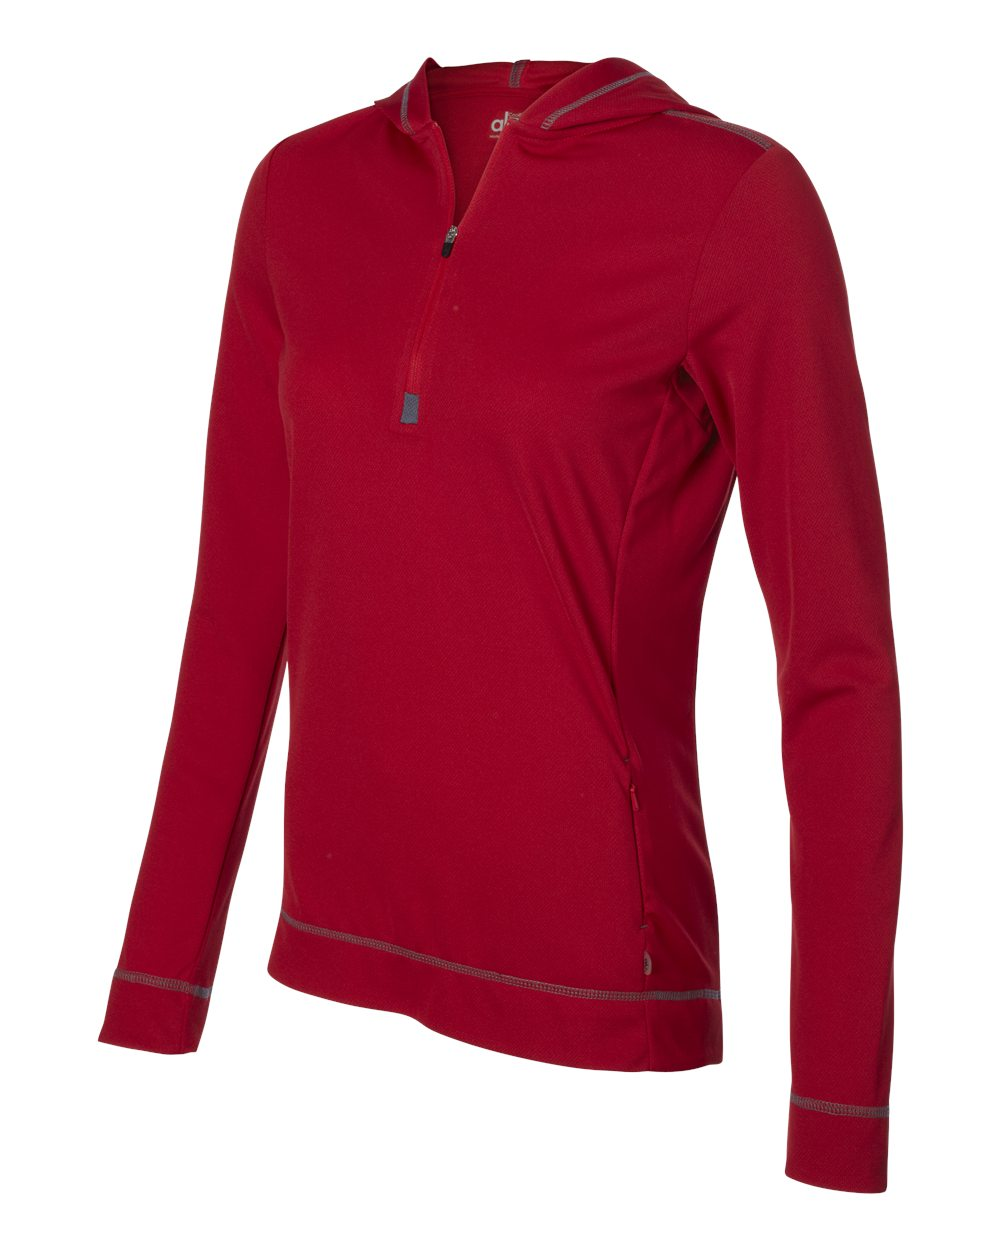 Alo Womens Performance Half Zip Hoodie W3002 Red - Slate